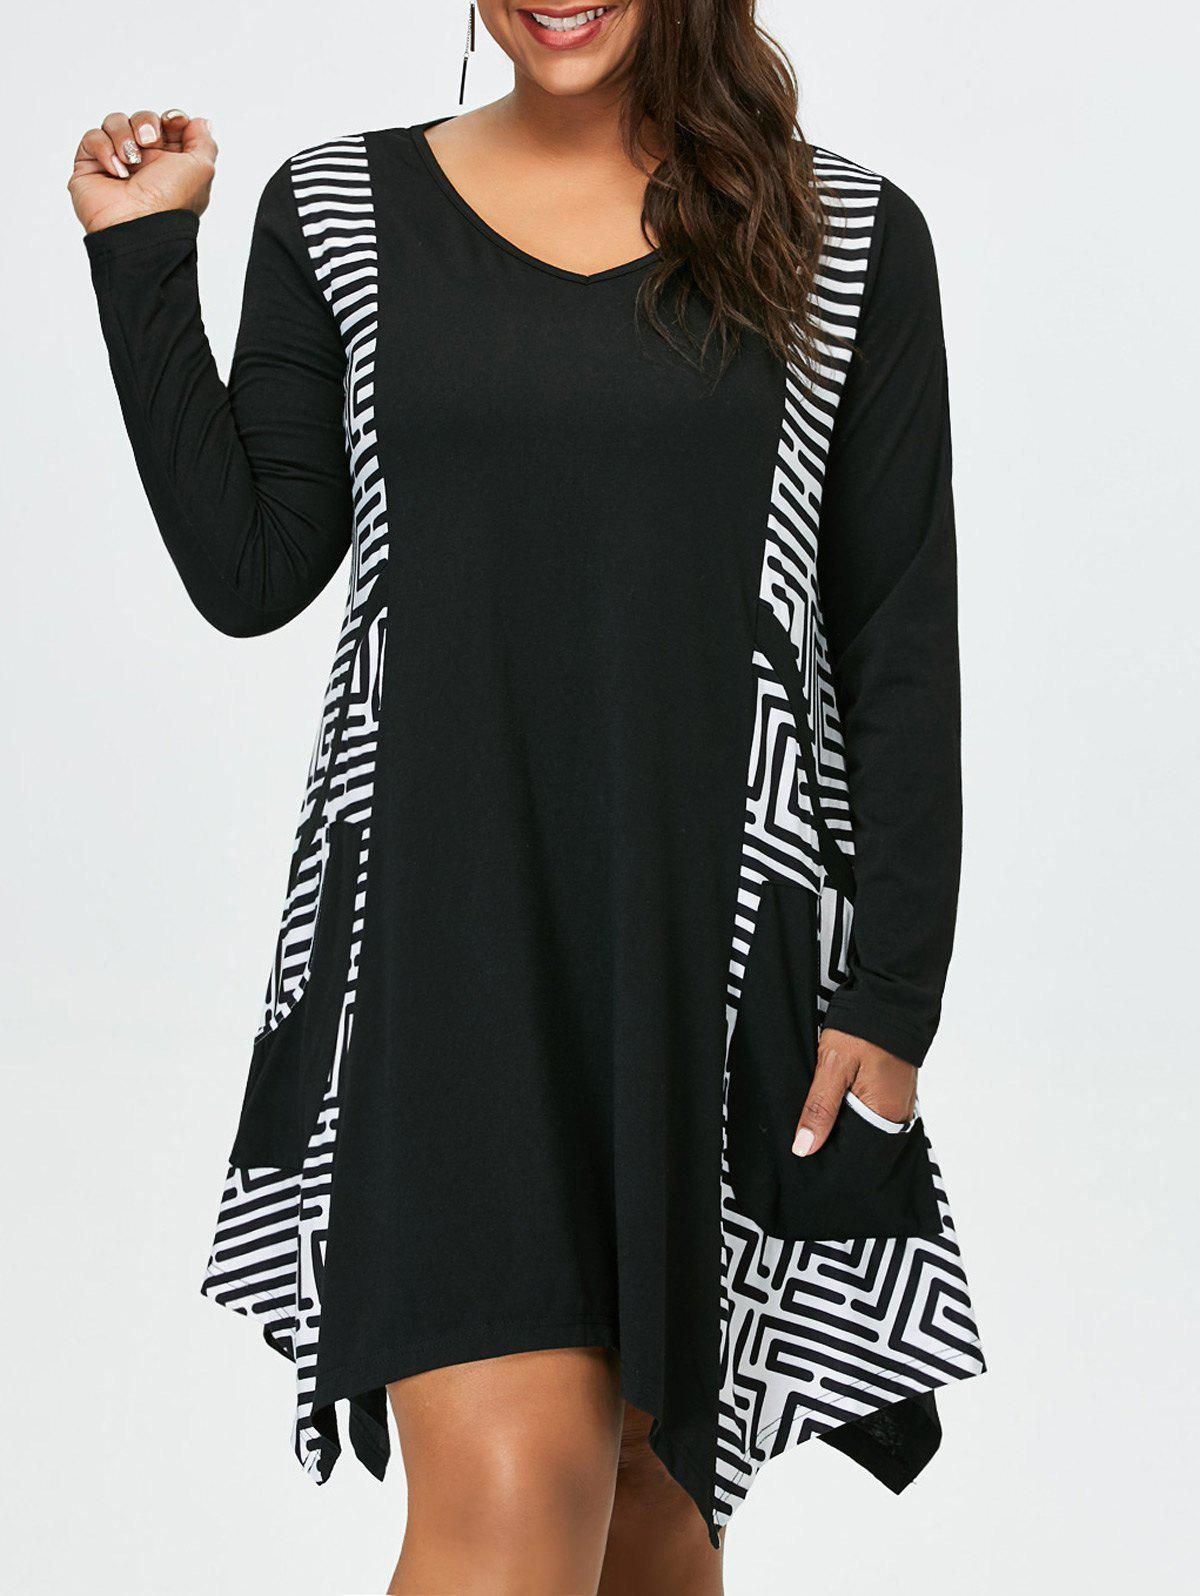 Plus Size Long Sleeve Asymmetrical Tee Dress with PocketsWOMEN<br><br>Size: 3XL; Color: WHITE AND BLACK; Style: Casual; Material: Polyester,Spandex; Silhouette: Asymmetrical; Dresses Length: Knee-Length; Neckline: V-Neck; Sleeve Length: Long Sleeves; Pattern Type: Others; With Belt: No; Season: Fall,Spring,Summer; Weight: 0.4200kg; Package Contents: 1 x Dress;